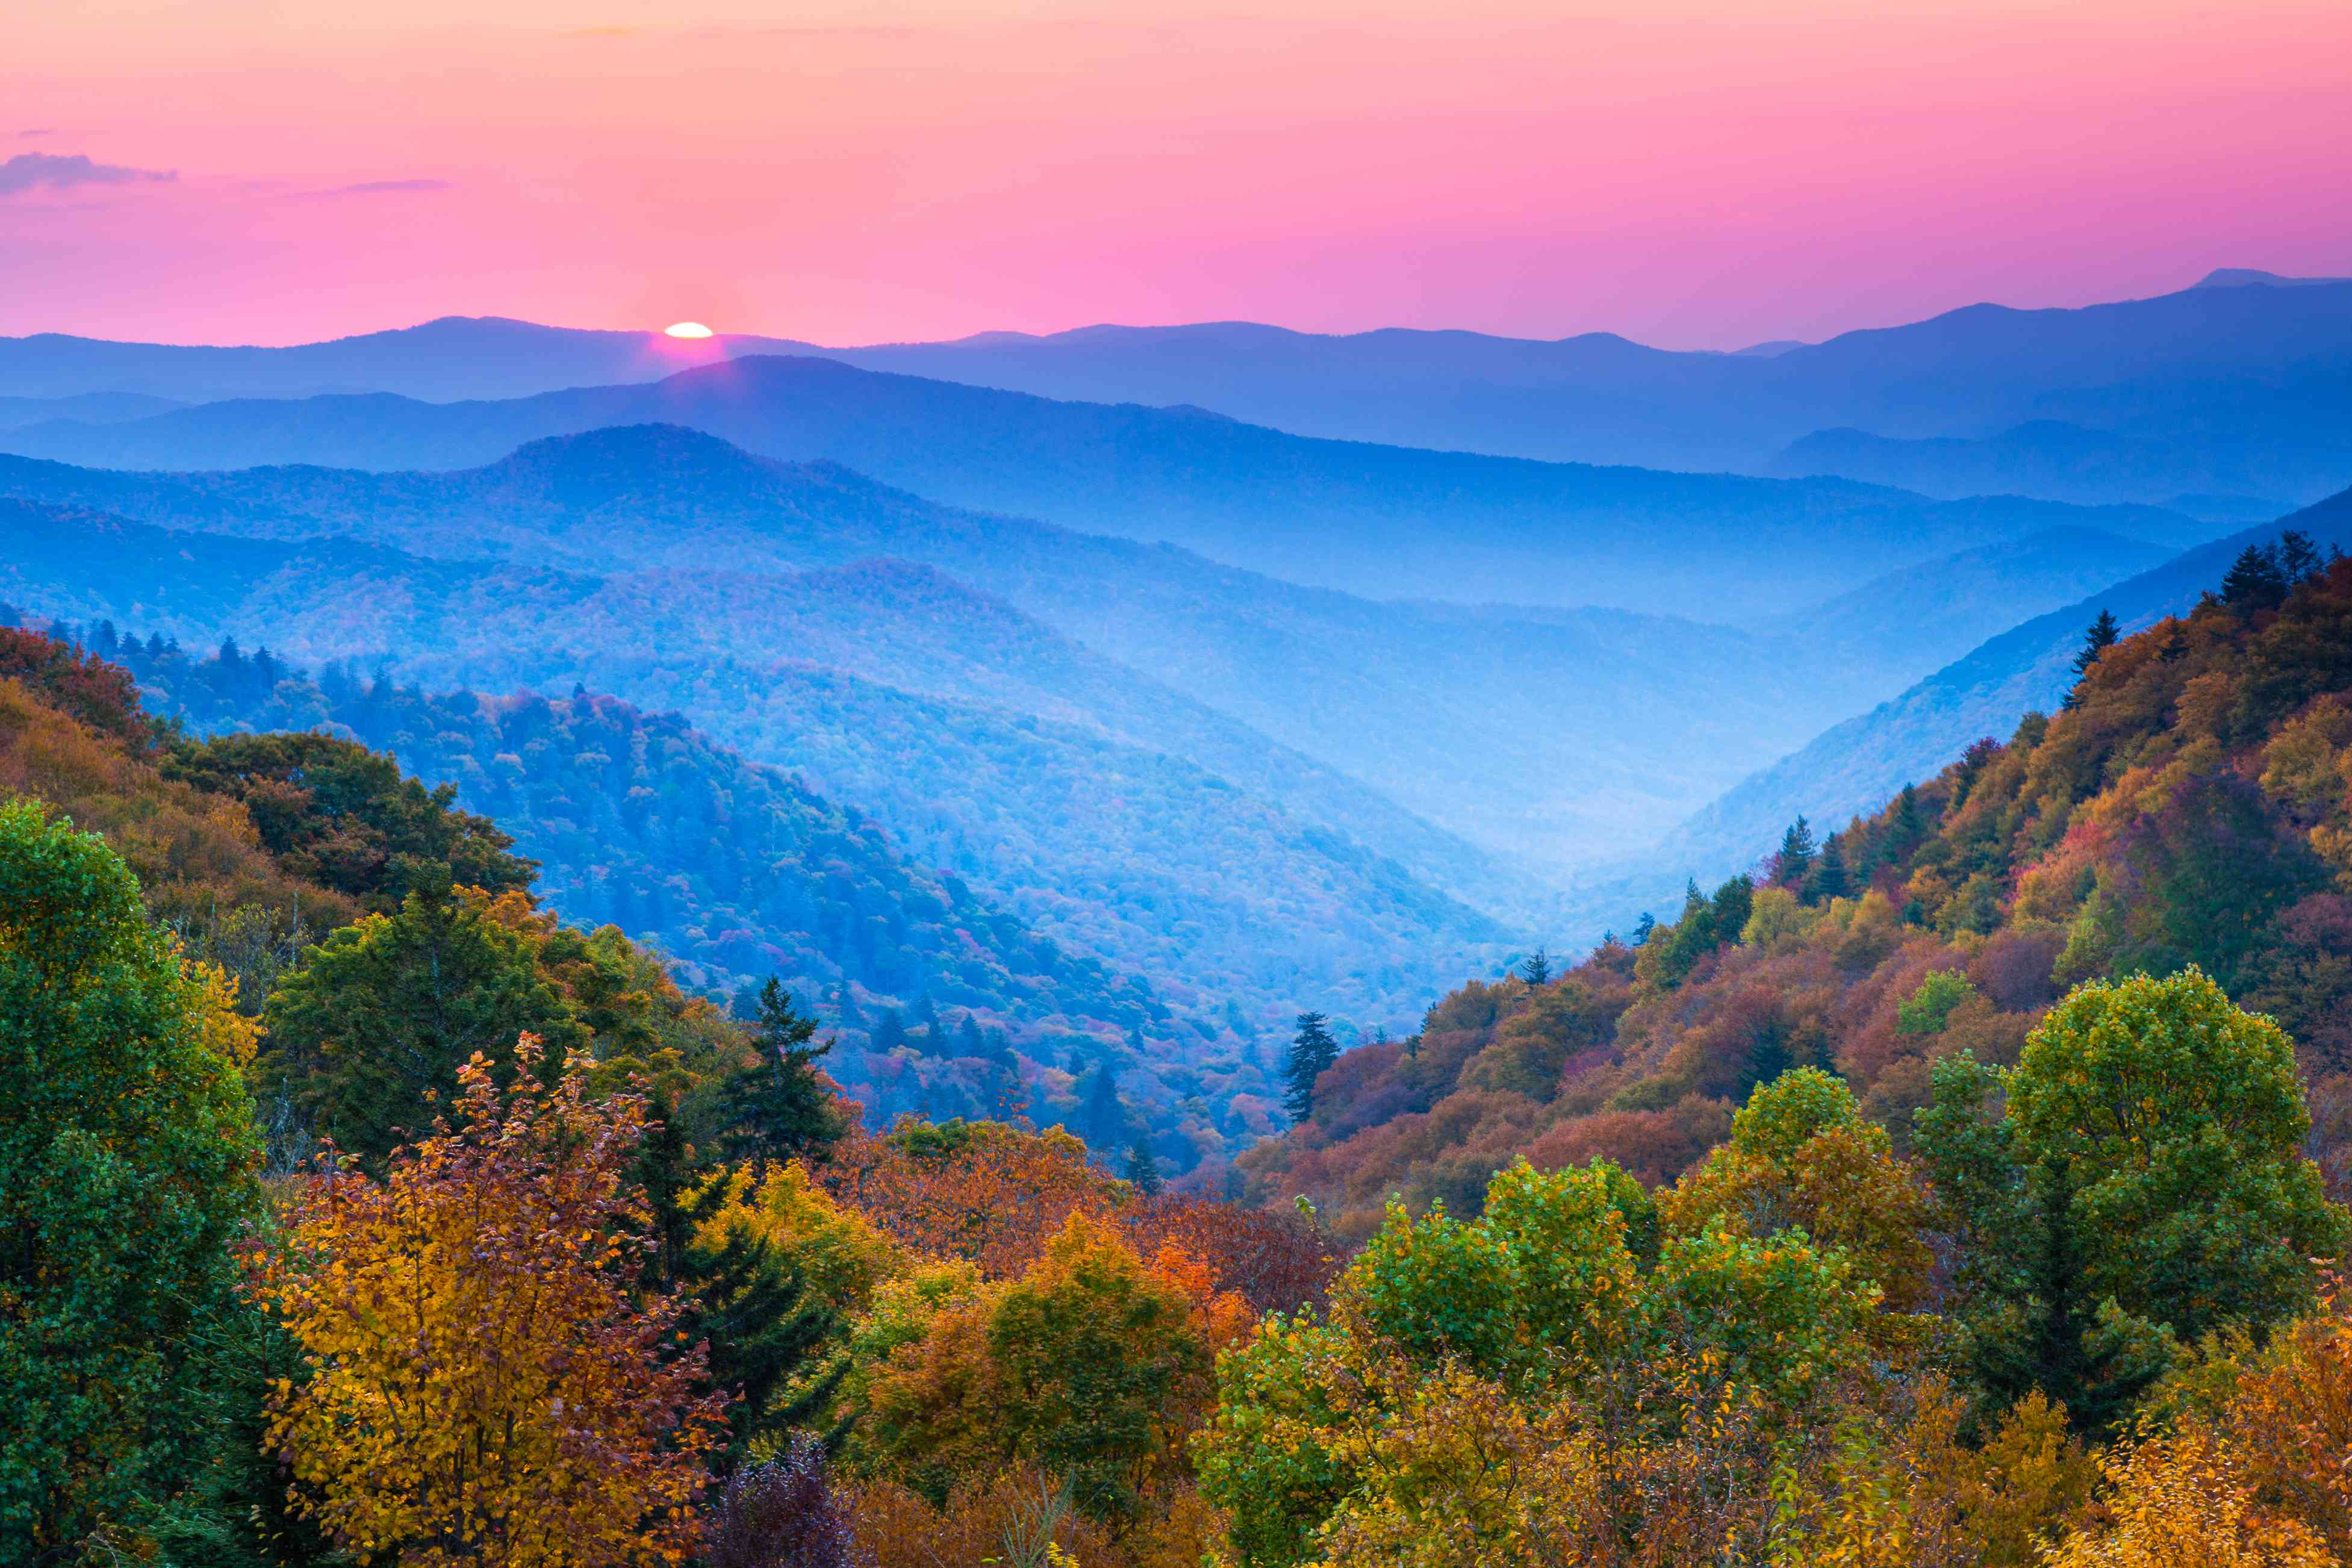 Pink and blue autumn sunrise in Great Smoky Mountains National Park